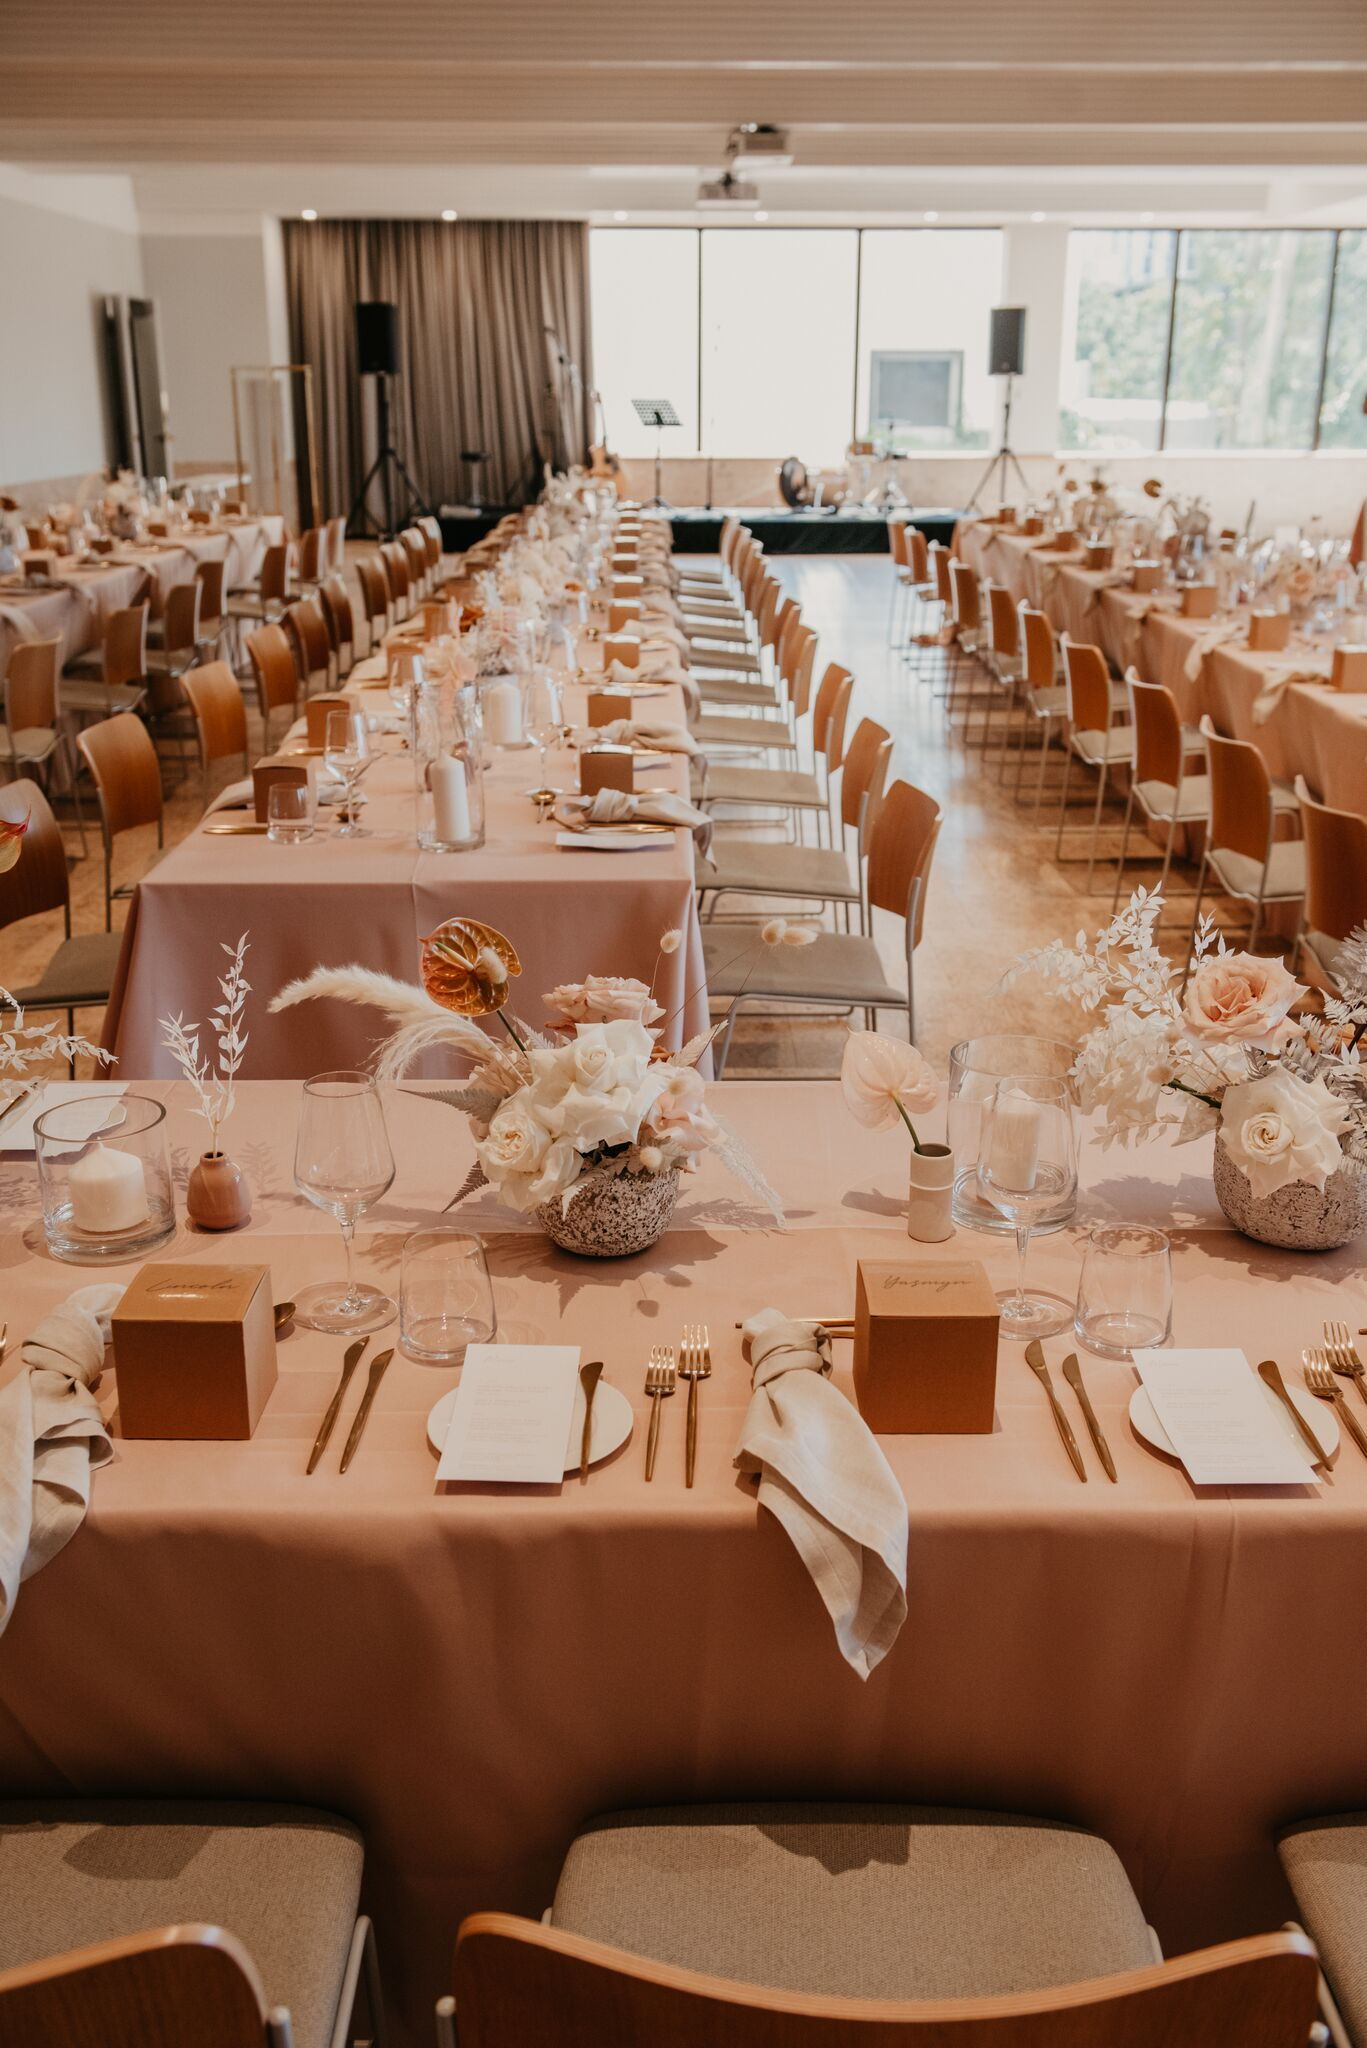 white+white the wedding school Yasmyn and Lincoln The Calile Hotel dusty pink cream florals linens reception venue tables close personalised styling dried florals gold cutlery bridal table